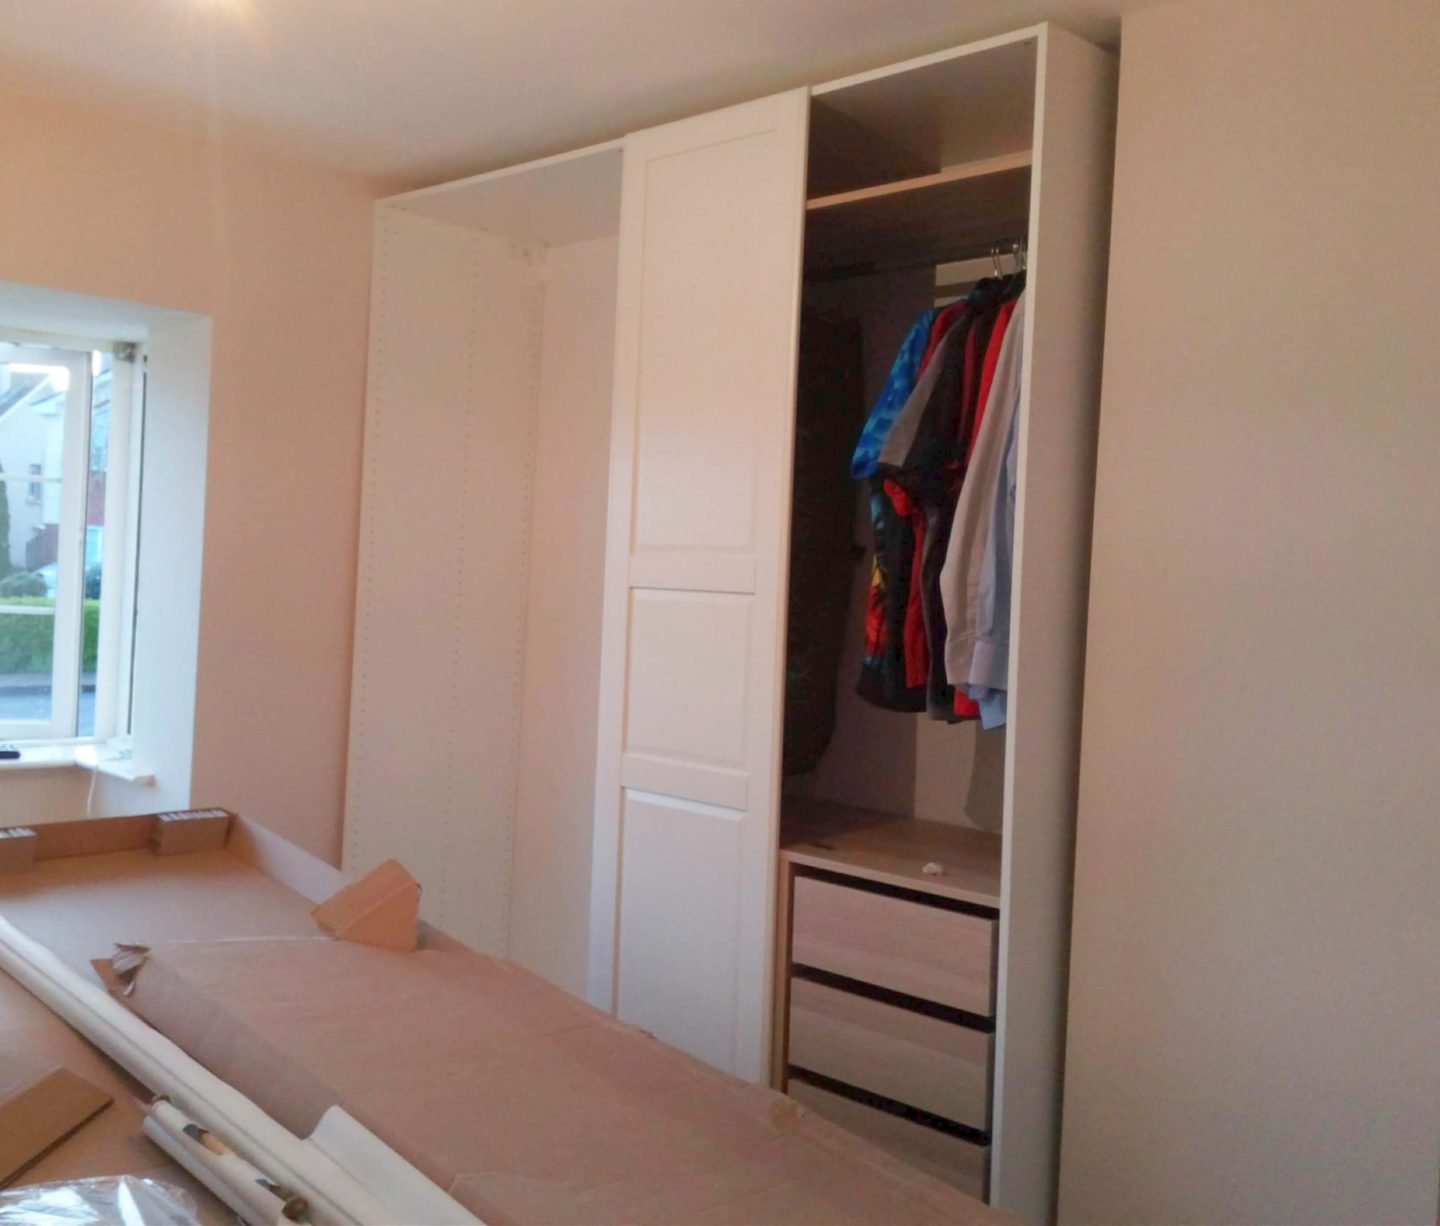 Planning and Assembling an Ikea Pax wardrobe - Our Home Obsession